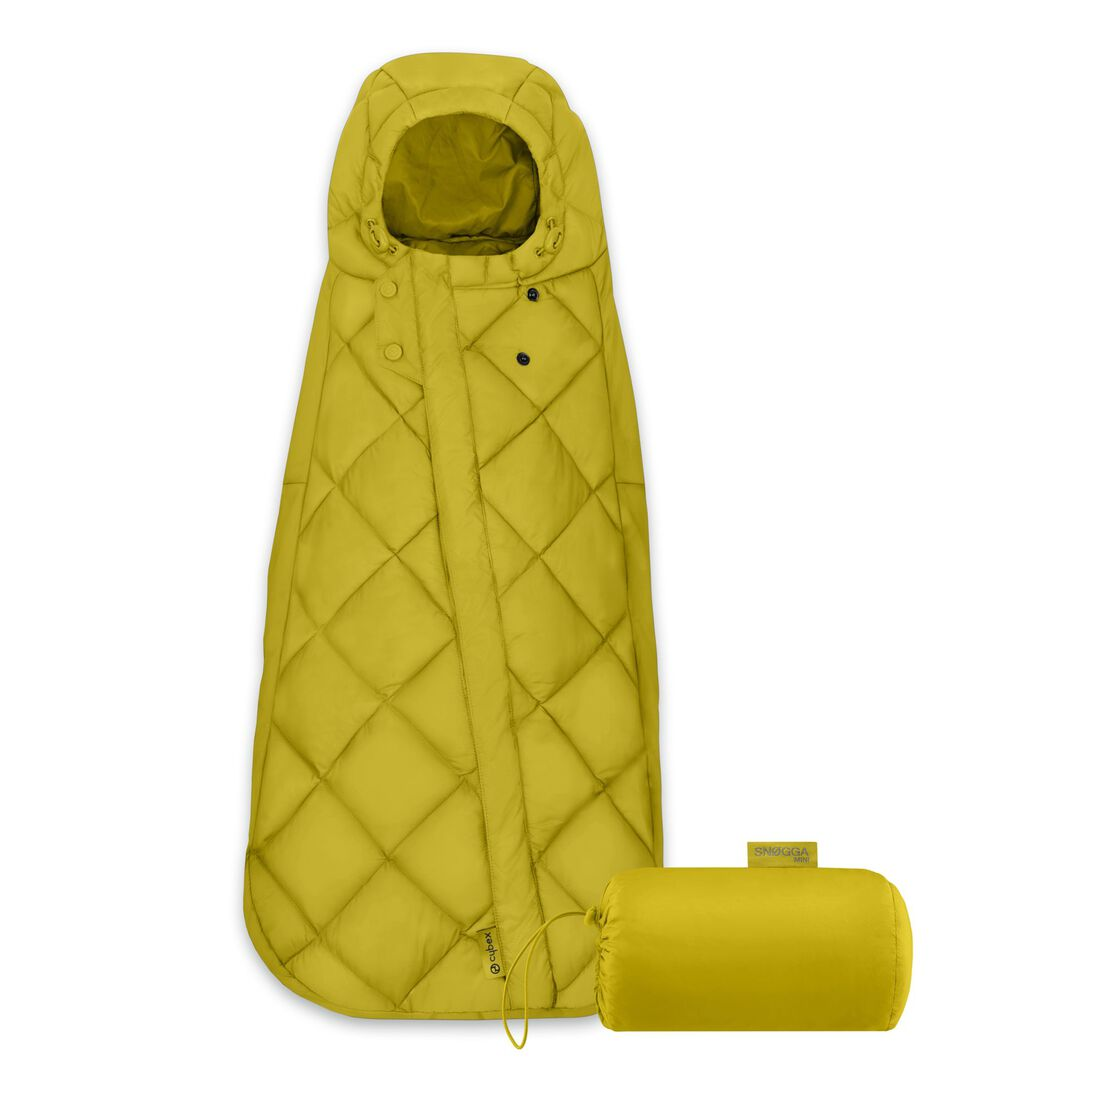 CYBEX Snogga Mini - Mustard Yellow in Mustard Yellow large Bild 1